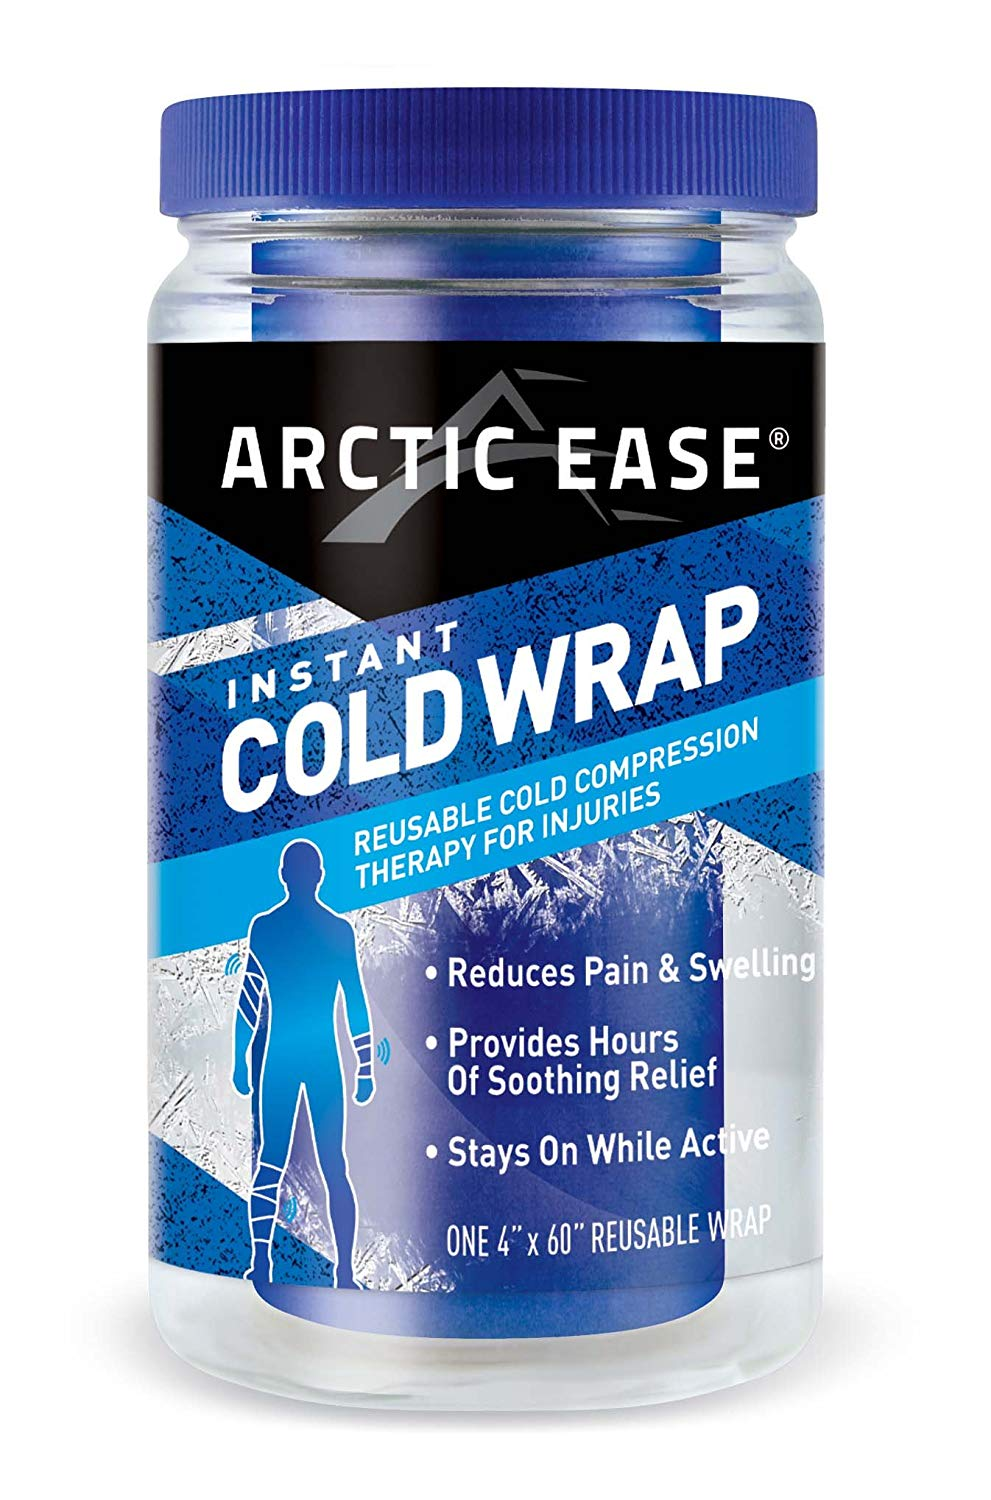 Arctic Ease Cold Wrap container